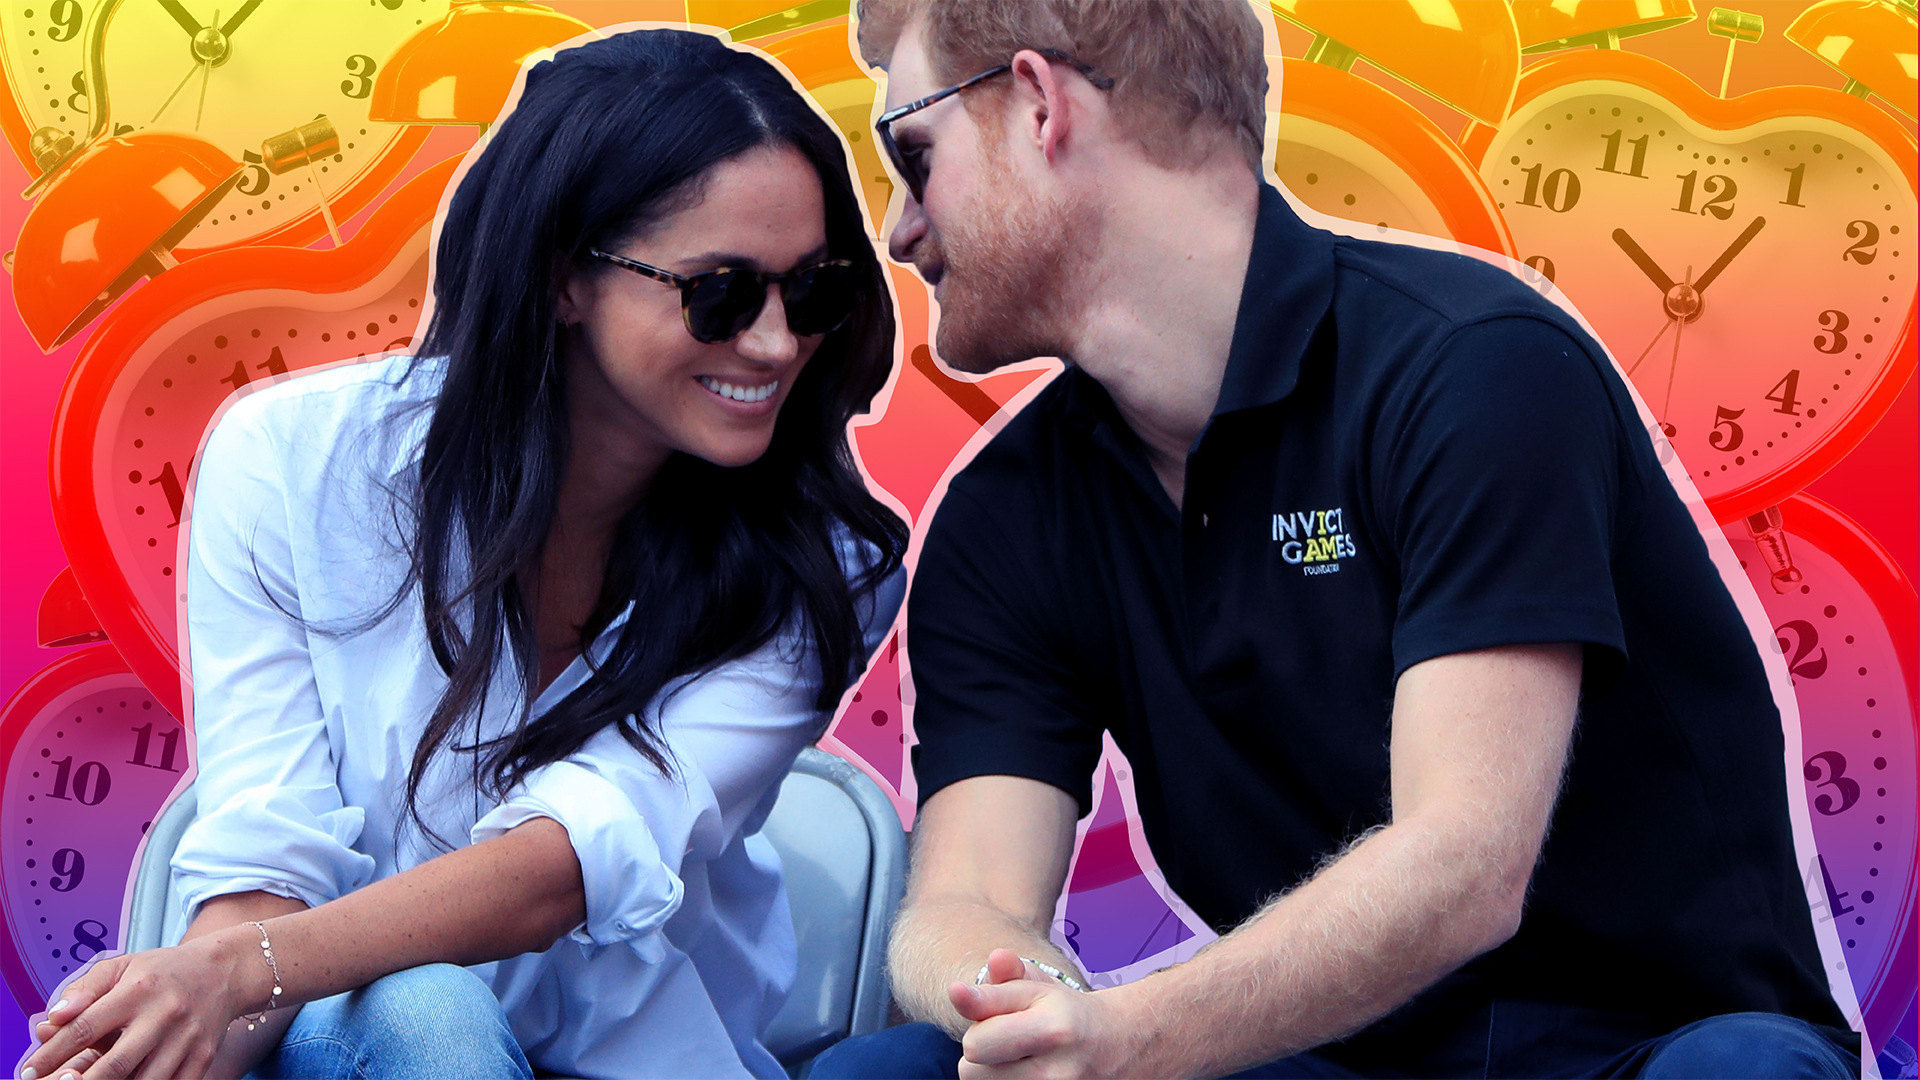 A Definitive Timeline of Meghan Markle and Prince Harry's Relationship in 2017